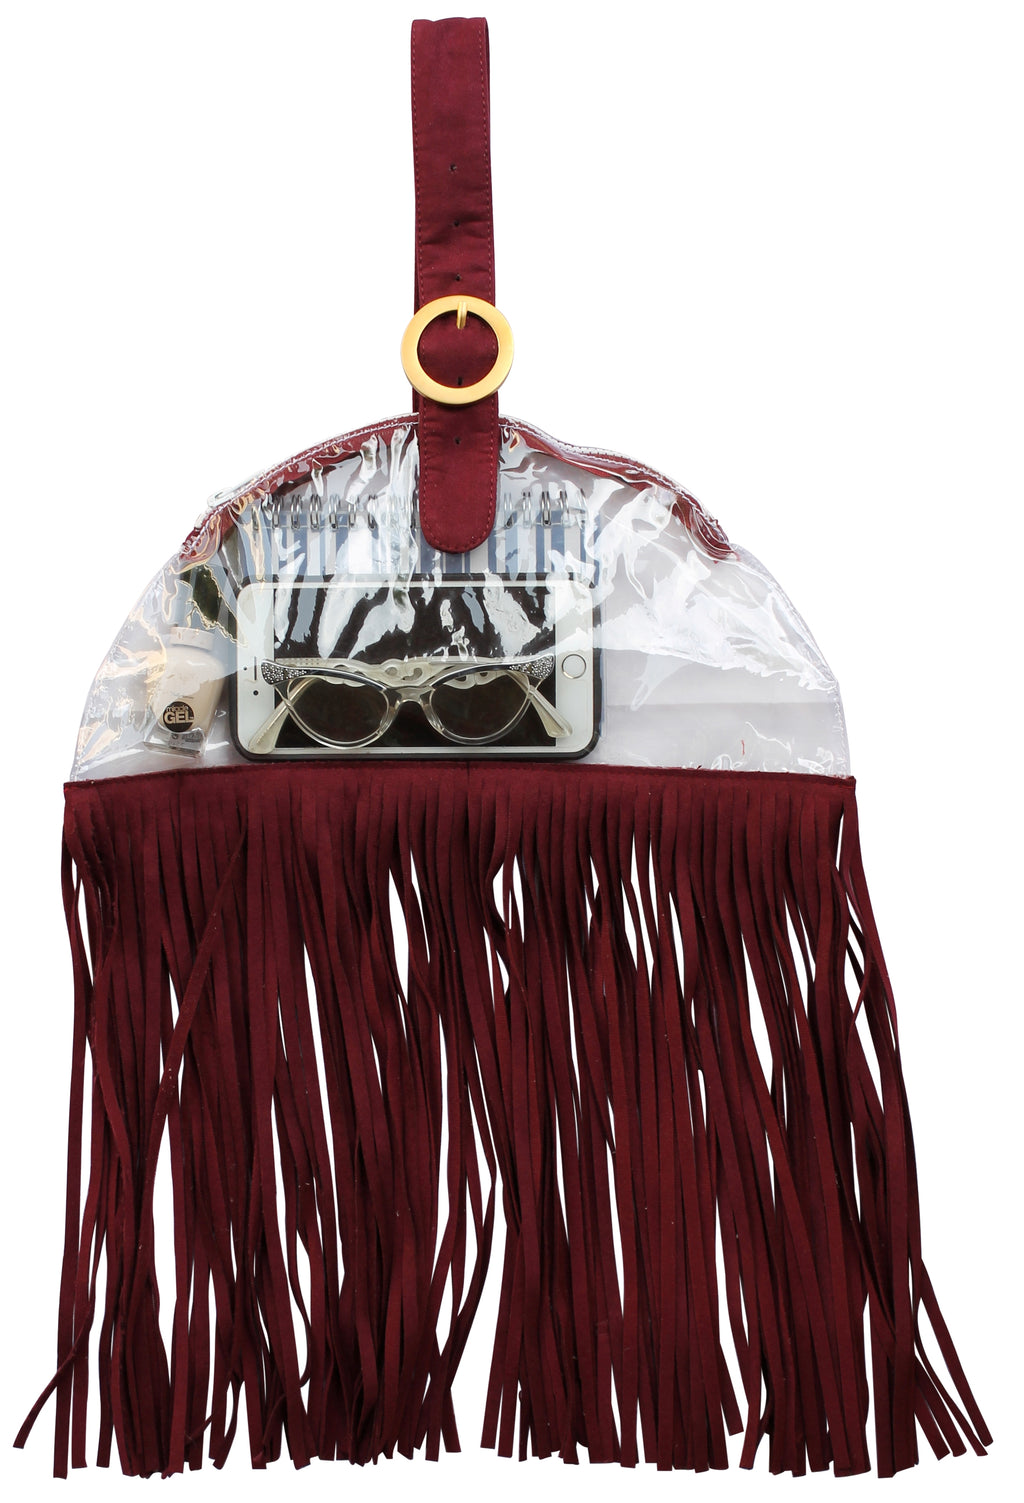 Game Day Stadium approved bag, clear bags, plastic handbags maroon, Game Day Bag, clear bags, football game day bags, clear handbags